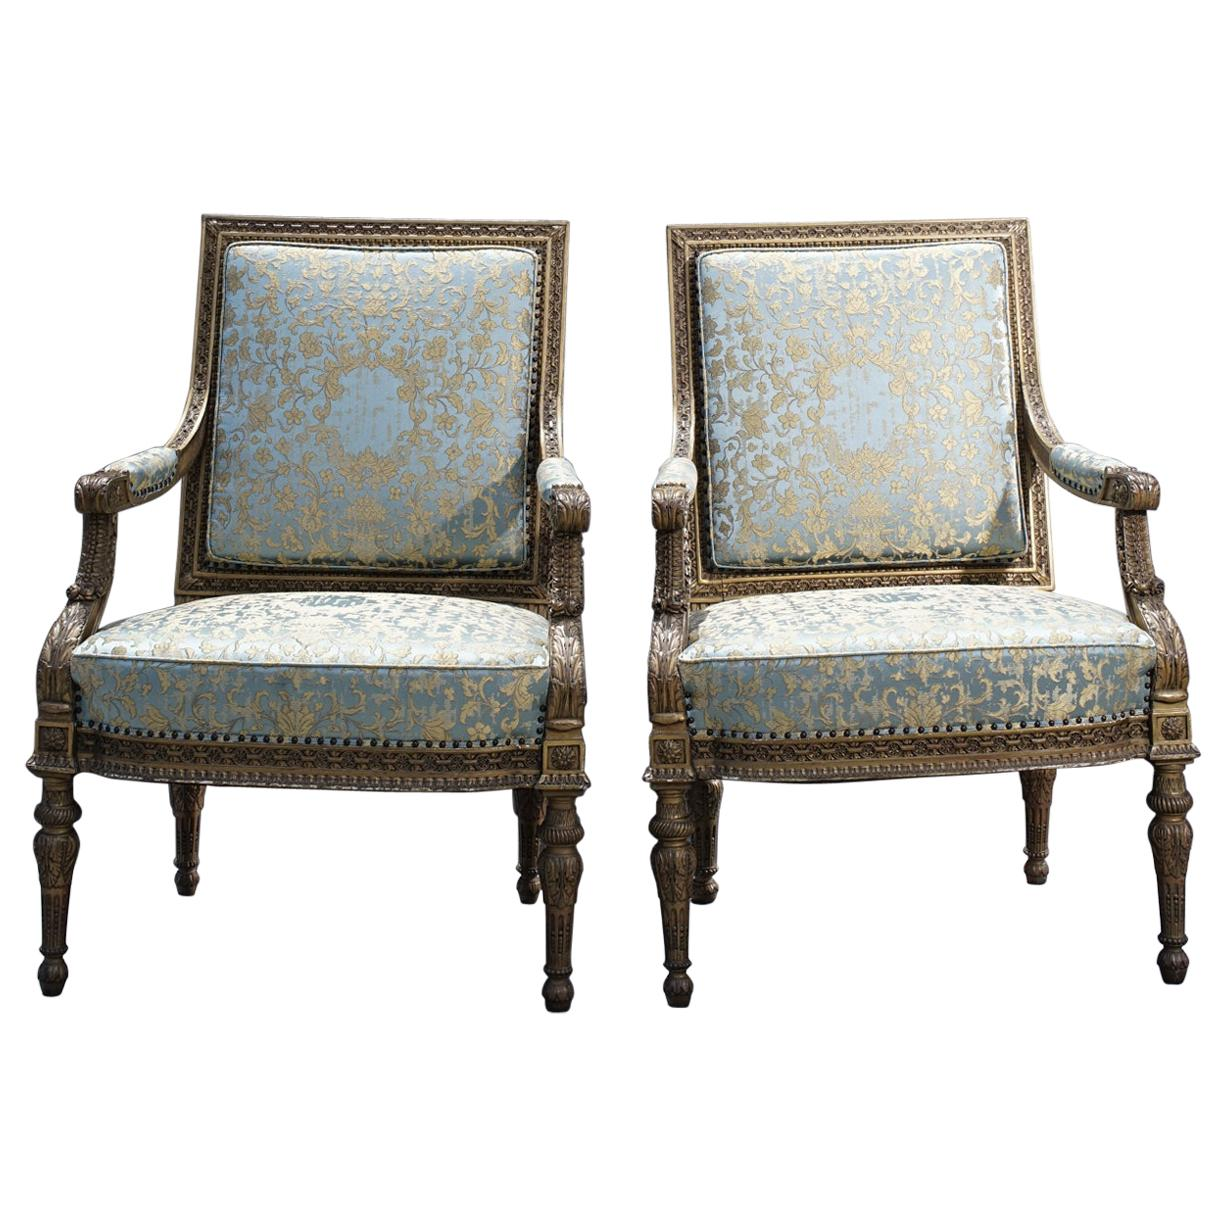 Pair of 19th Century French Giltwood Armchairs